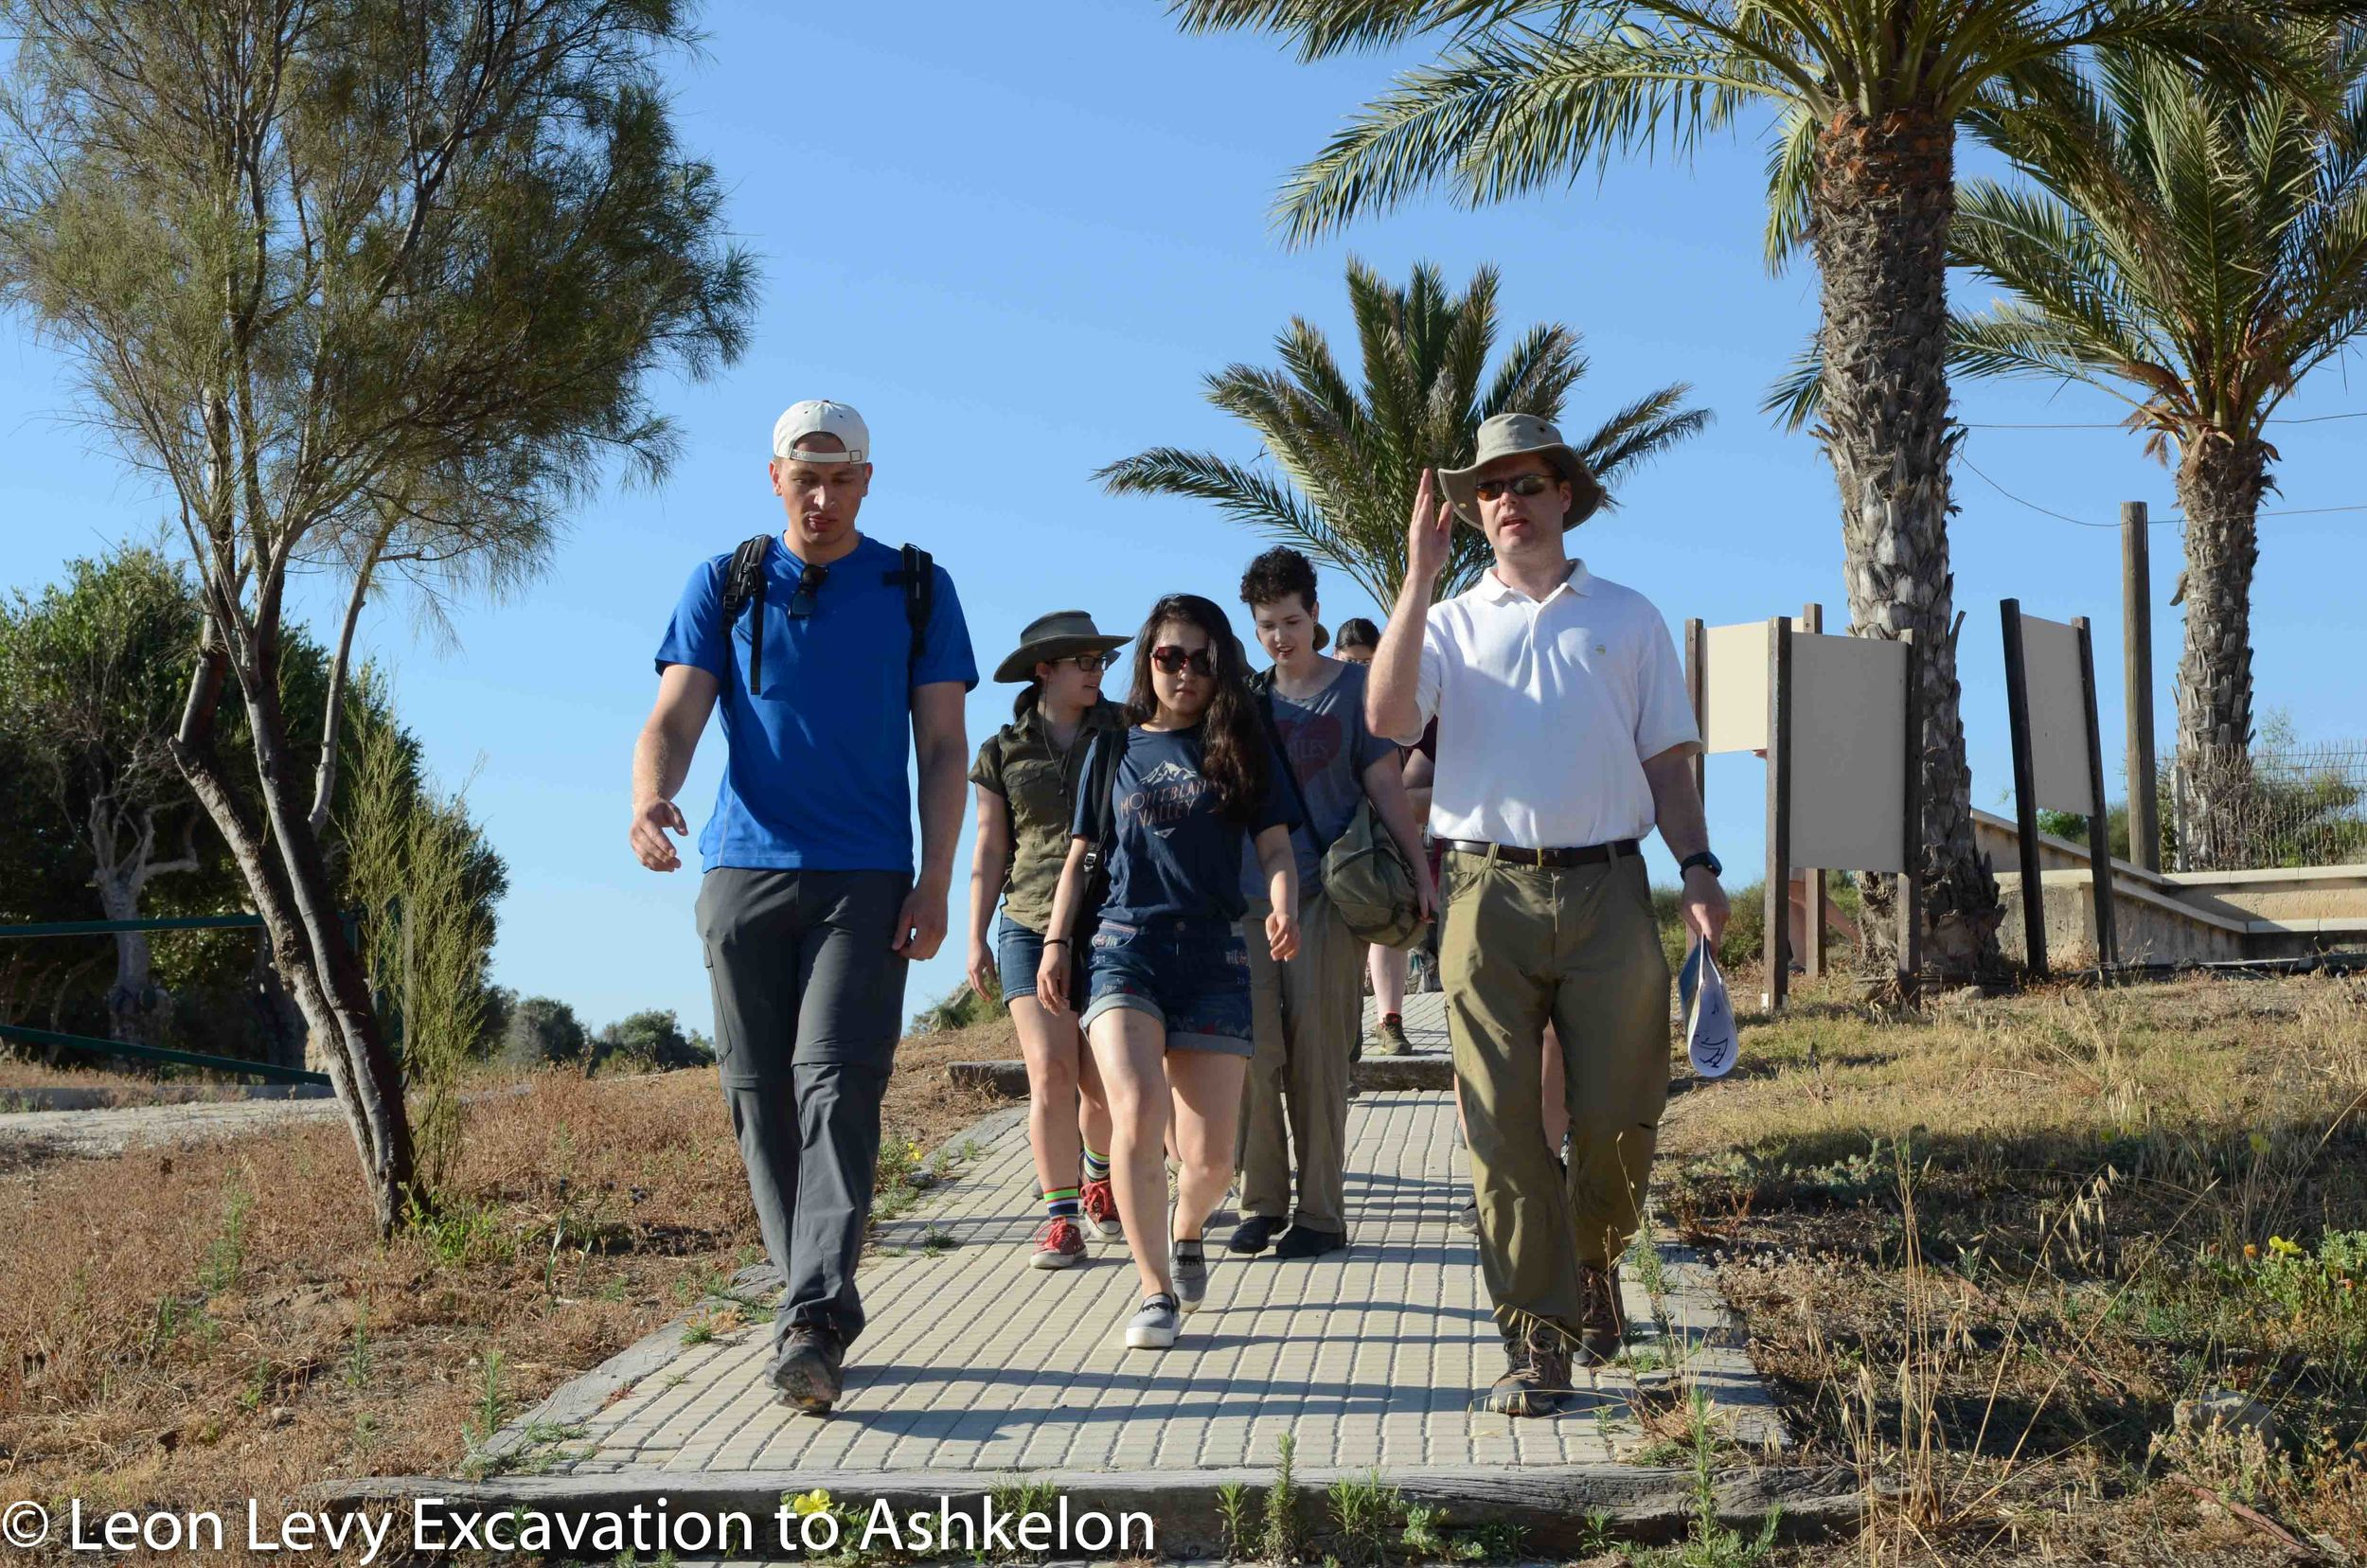 Walking down the path towards the Canaanite Gate